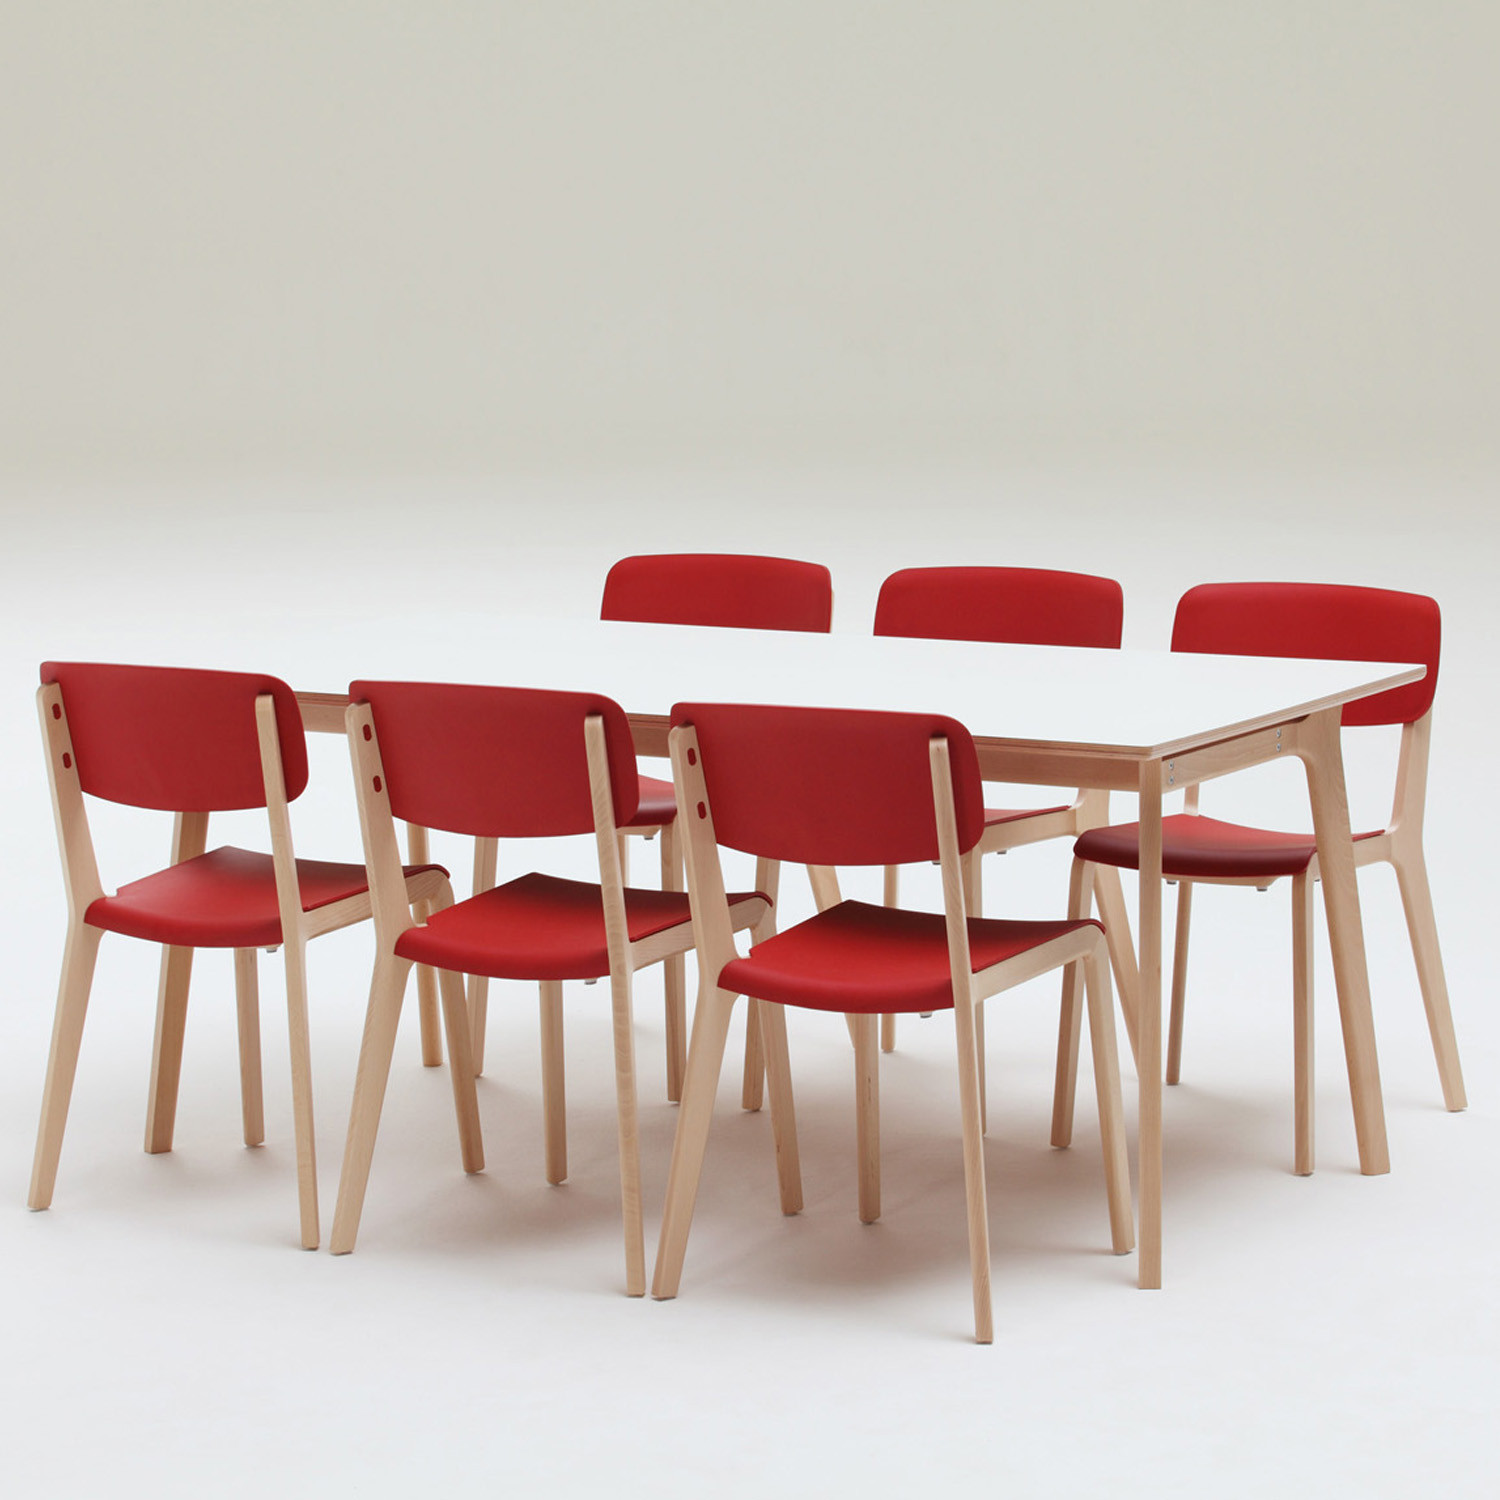 Jonty Dining Chairs and Dining Table